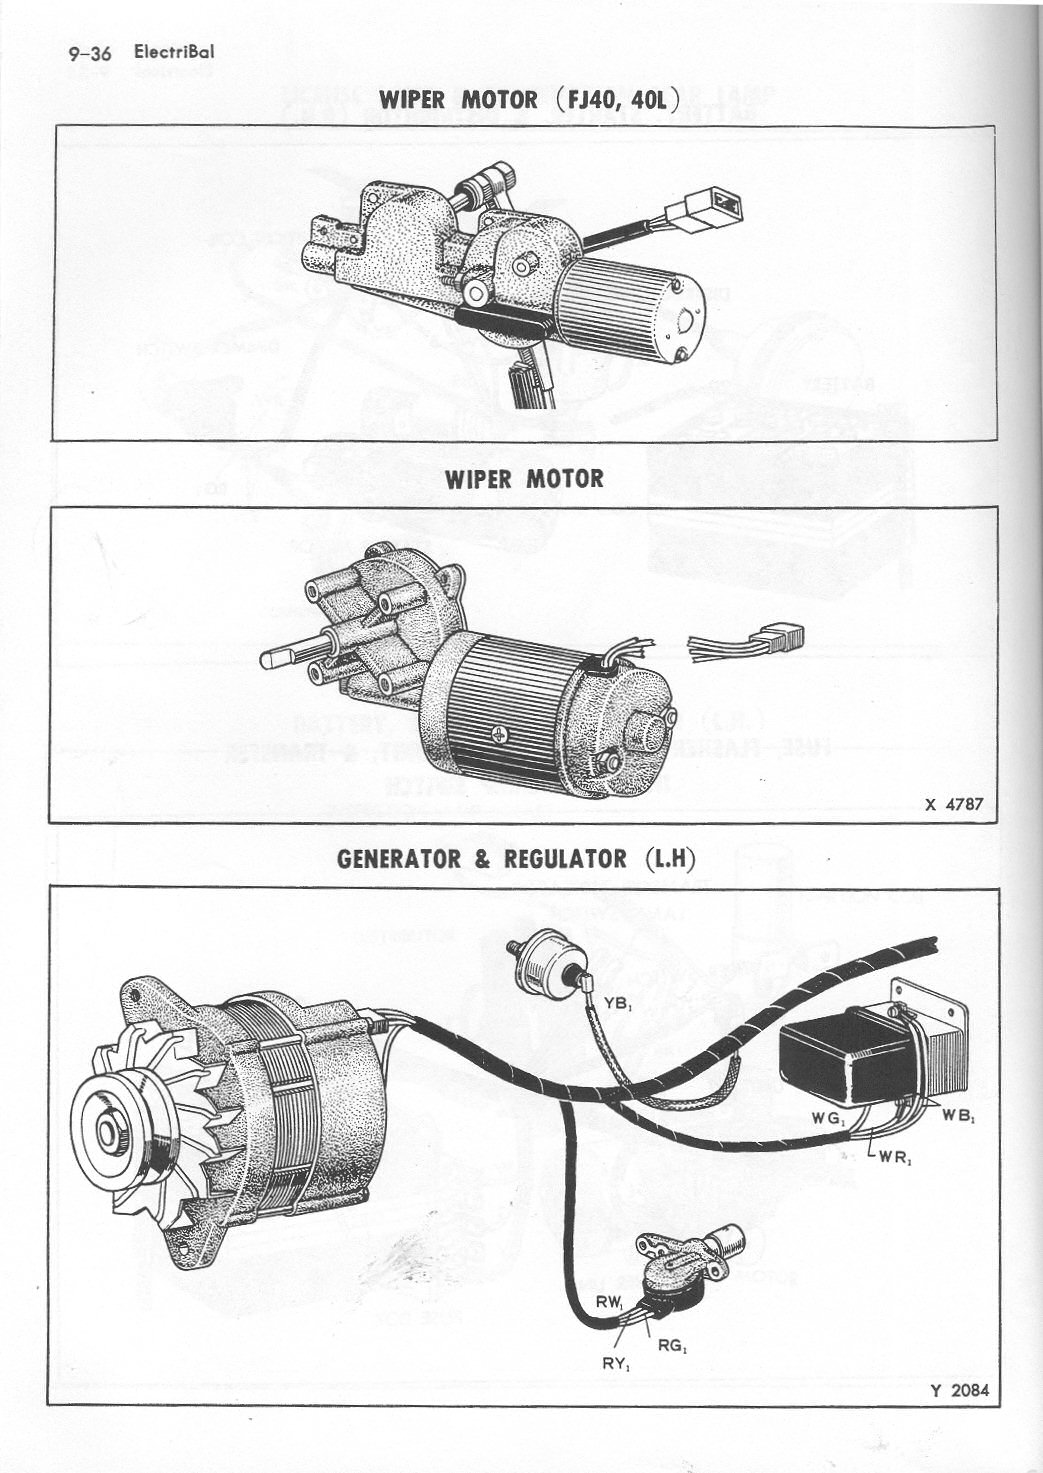 fj40 ignition switch wiring diagram  fj40  get free image